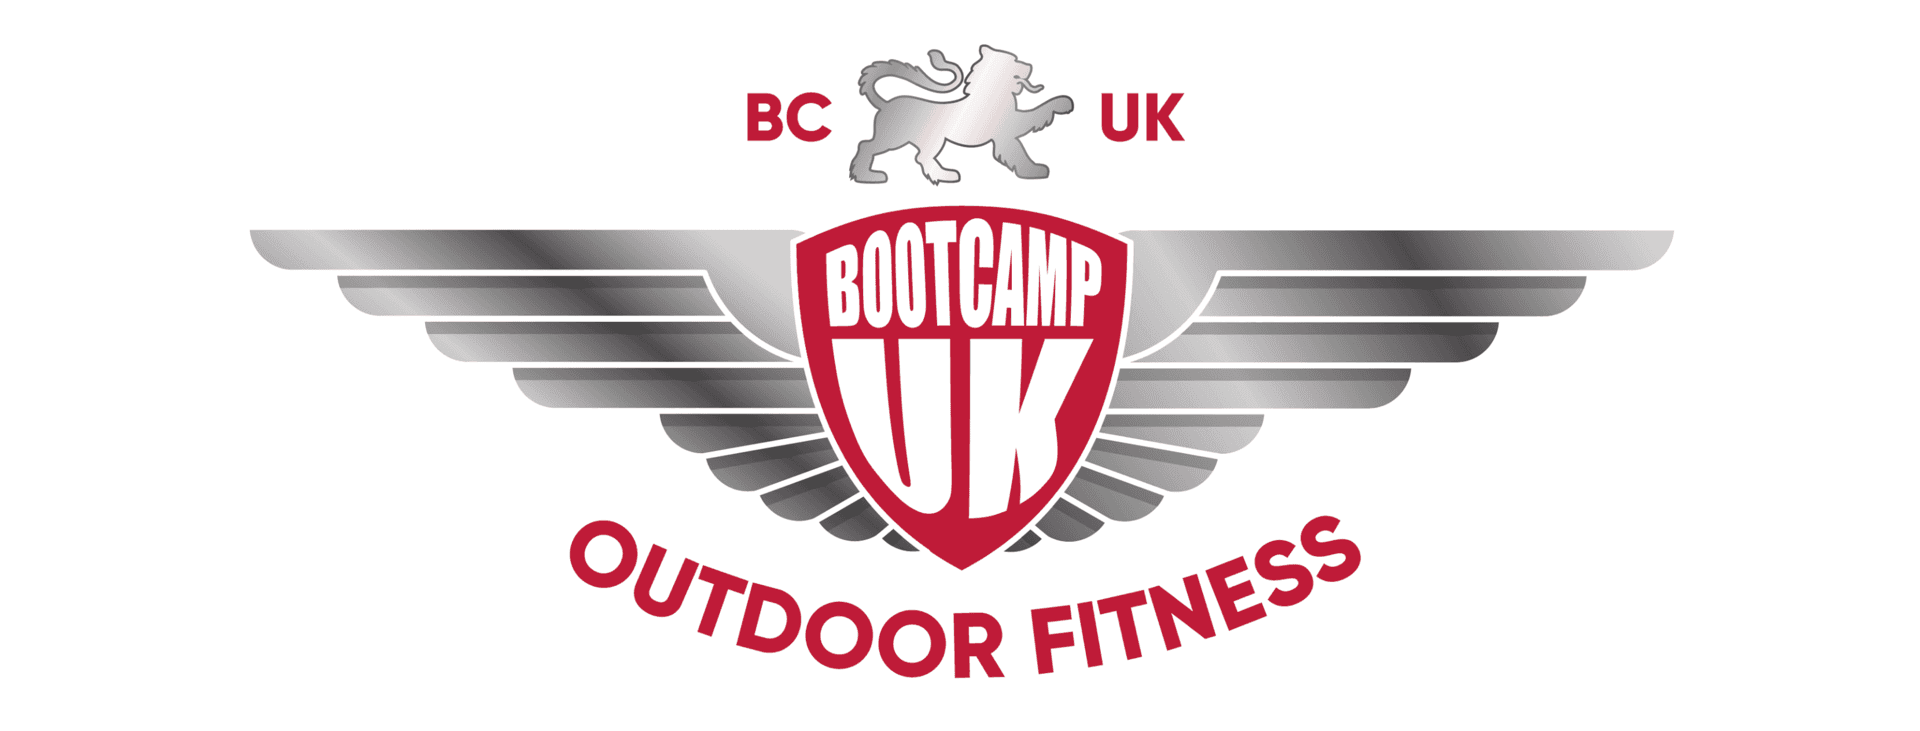 Boot camp uk weekend